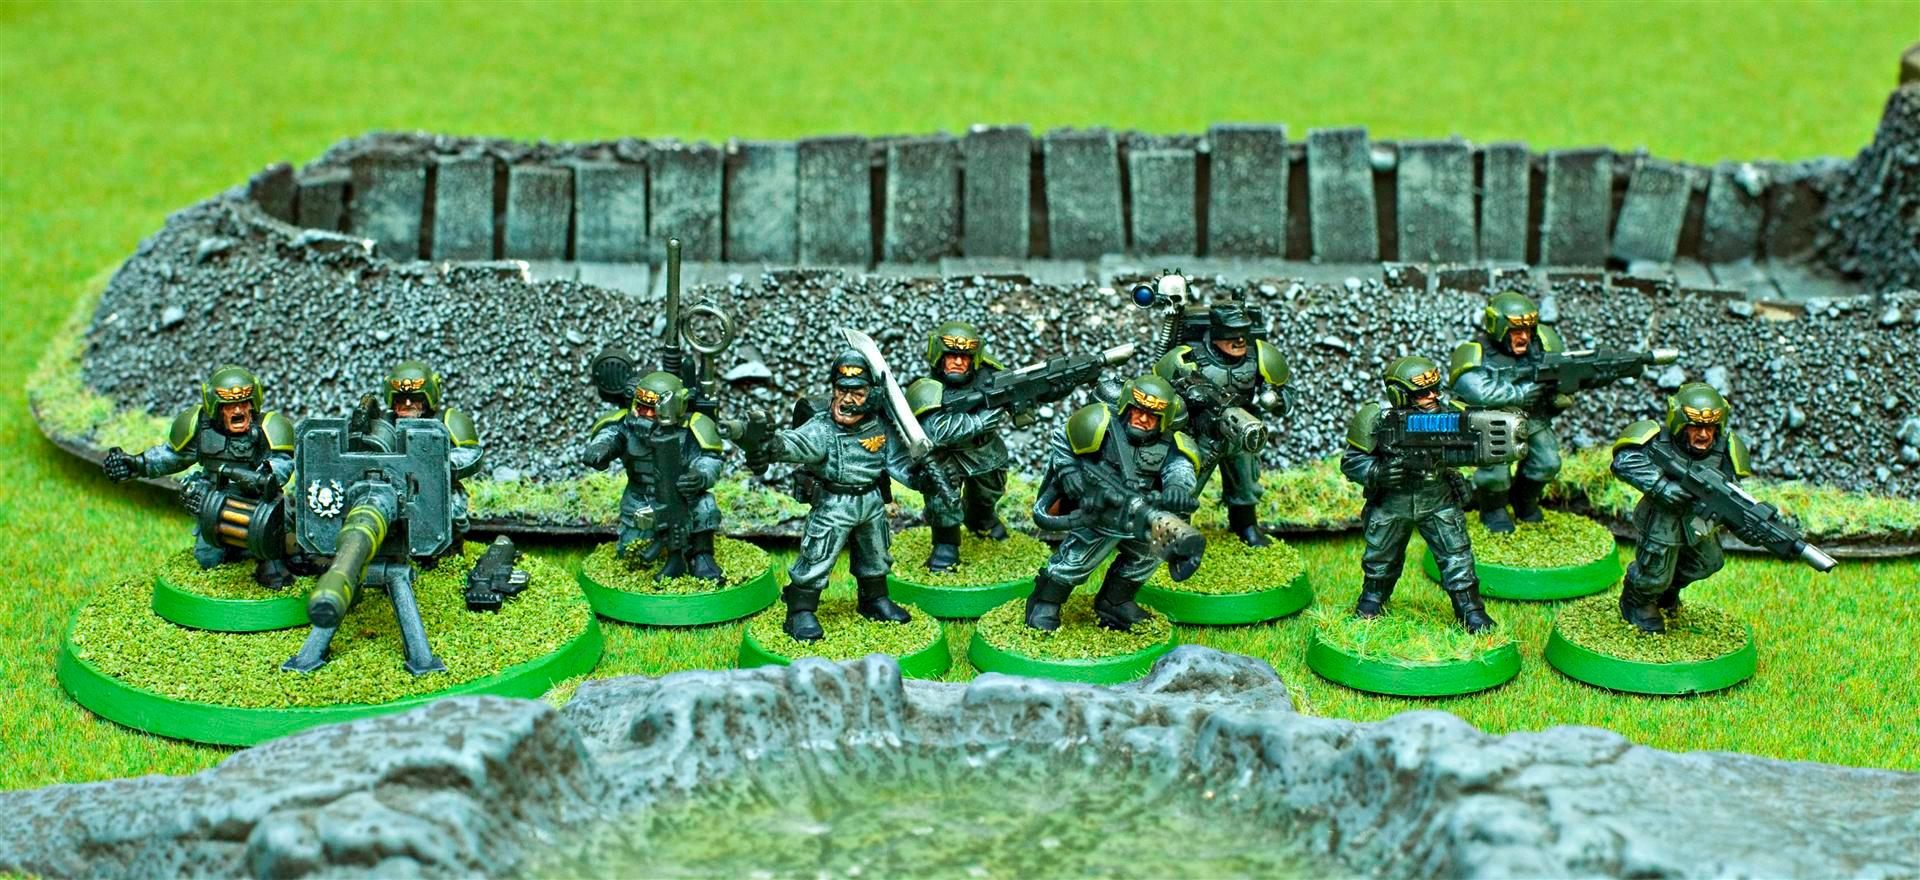 Apocalypse, Army, Astra Militarum, Autocannon, Flamer, Gaming Mat, Green, Grey, Guard, Imperial, Imperial Guard, Imperials, Plasma, Sgt, Troop Choice, Troops, Vet Squad, Veteran, Veteran Squad